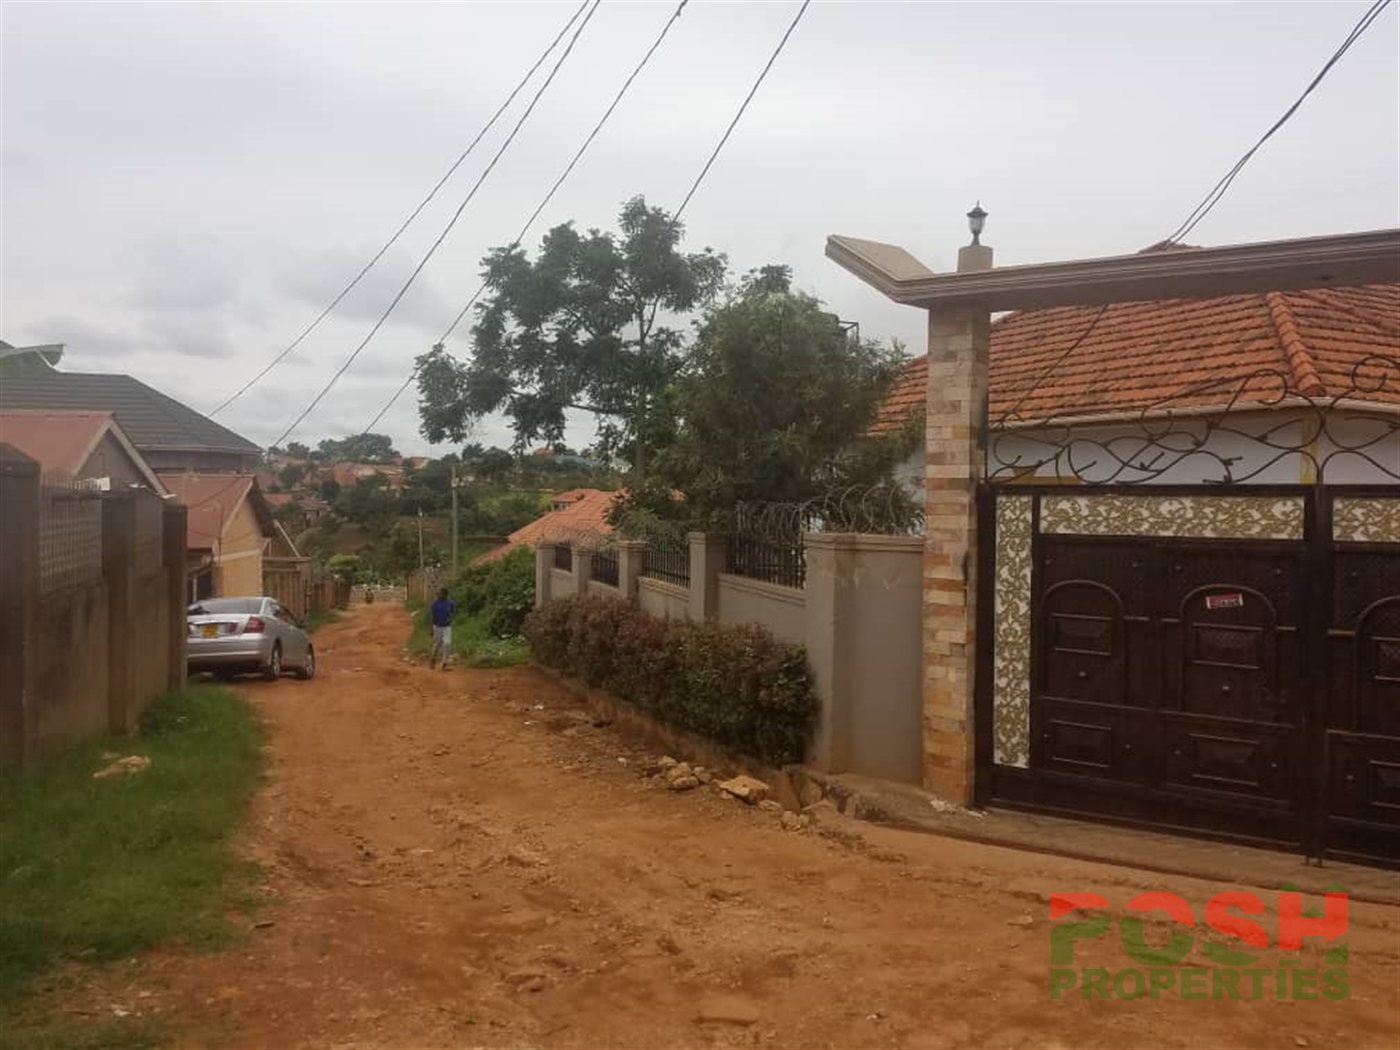 Neighborhood (scenary)